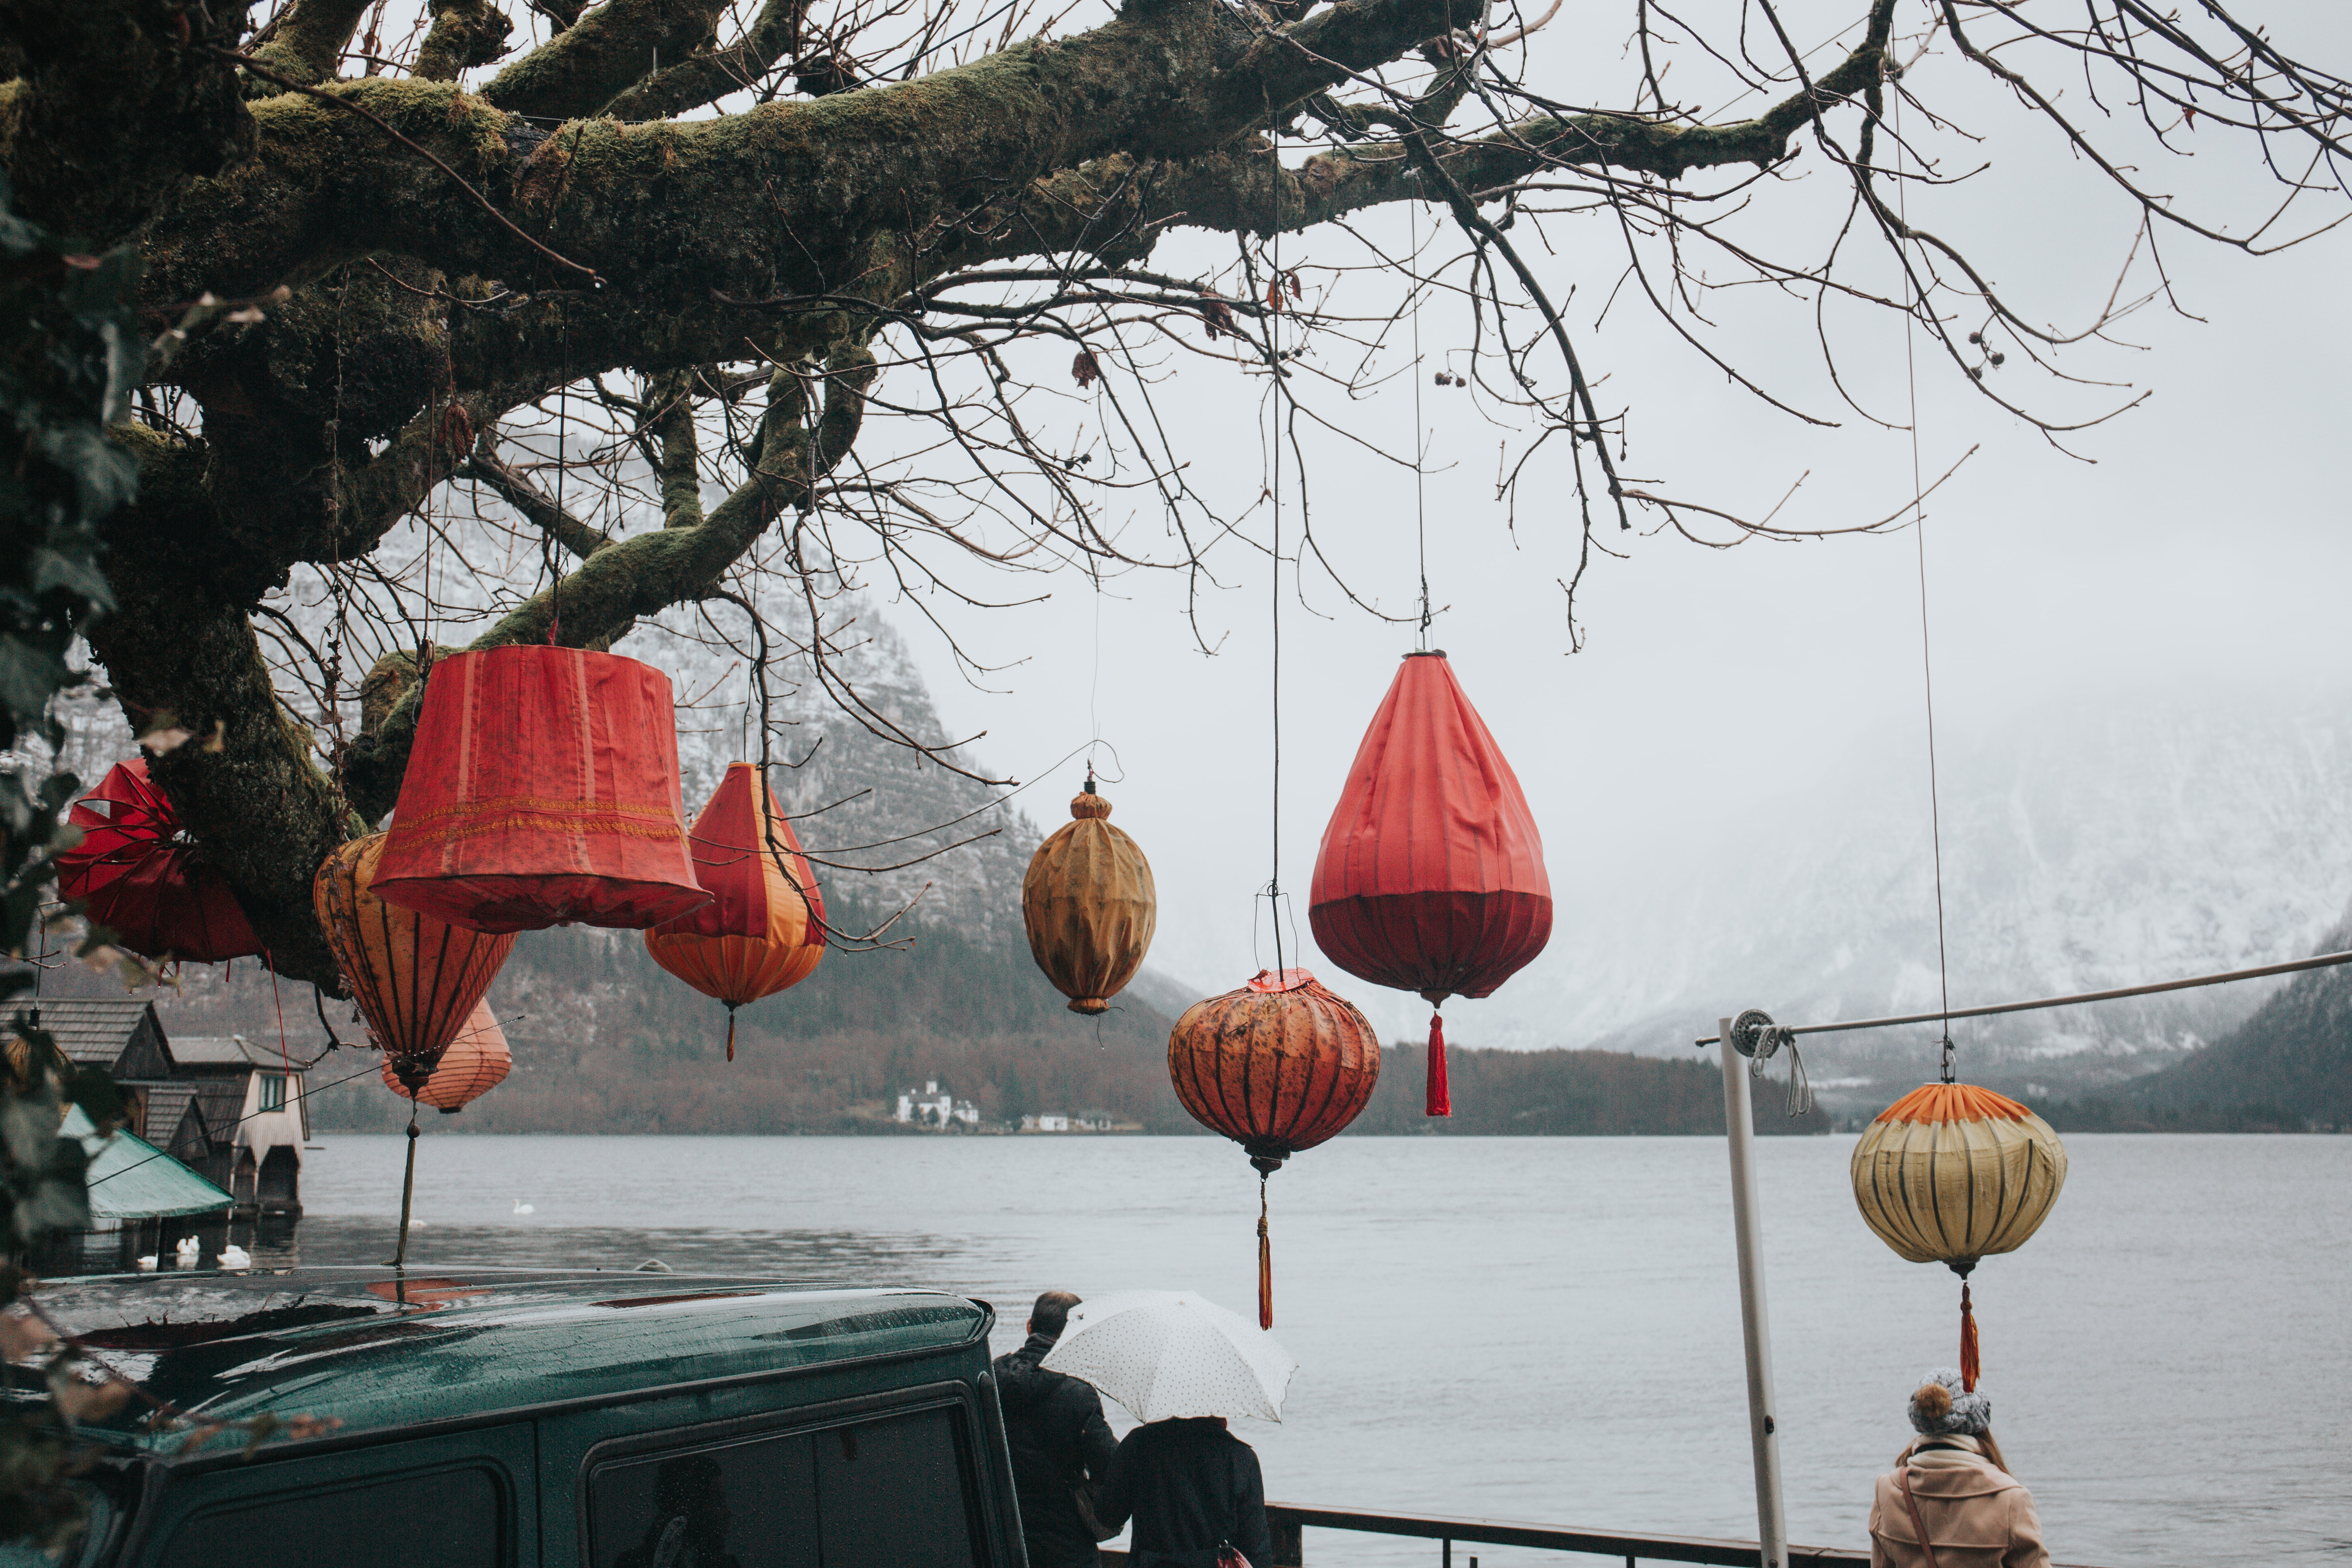 Colorful red paper lamps hang from a tree overlooking the water and a winter landscape